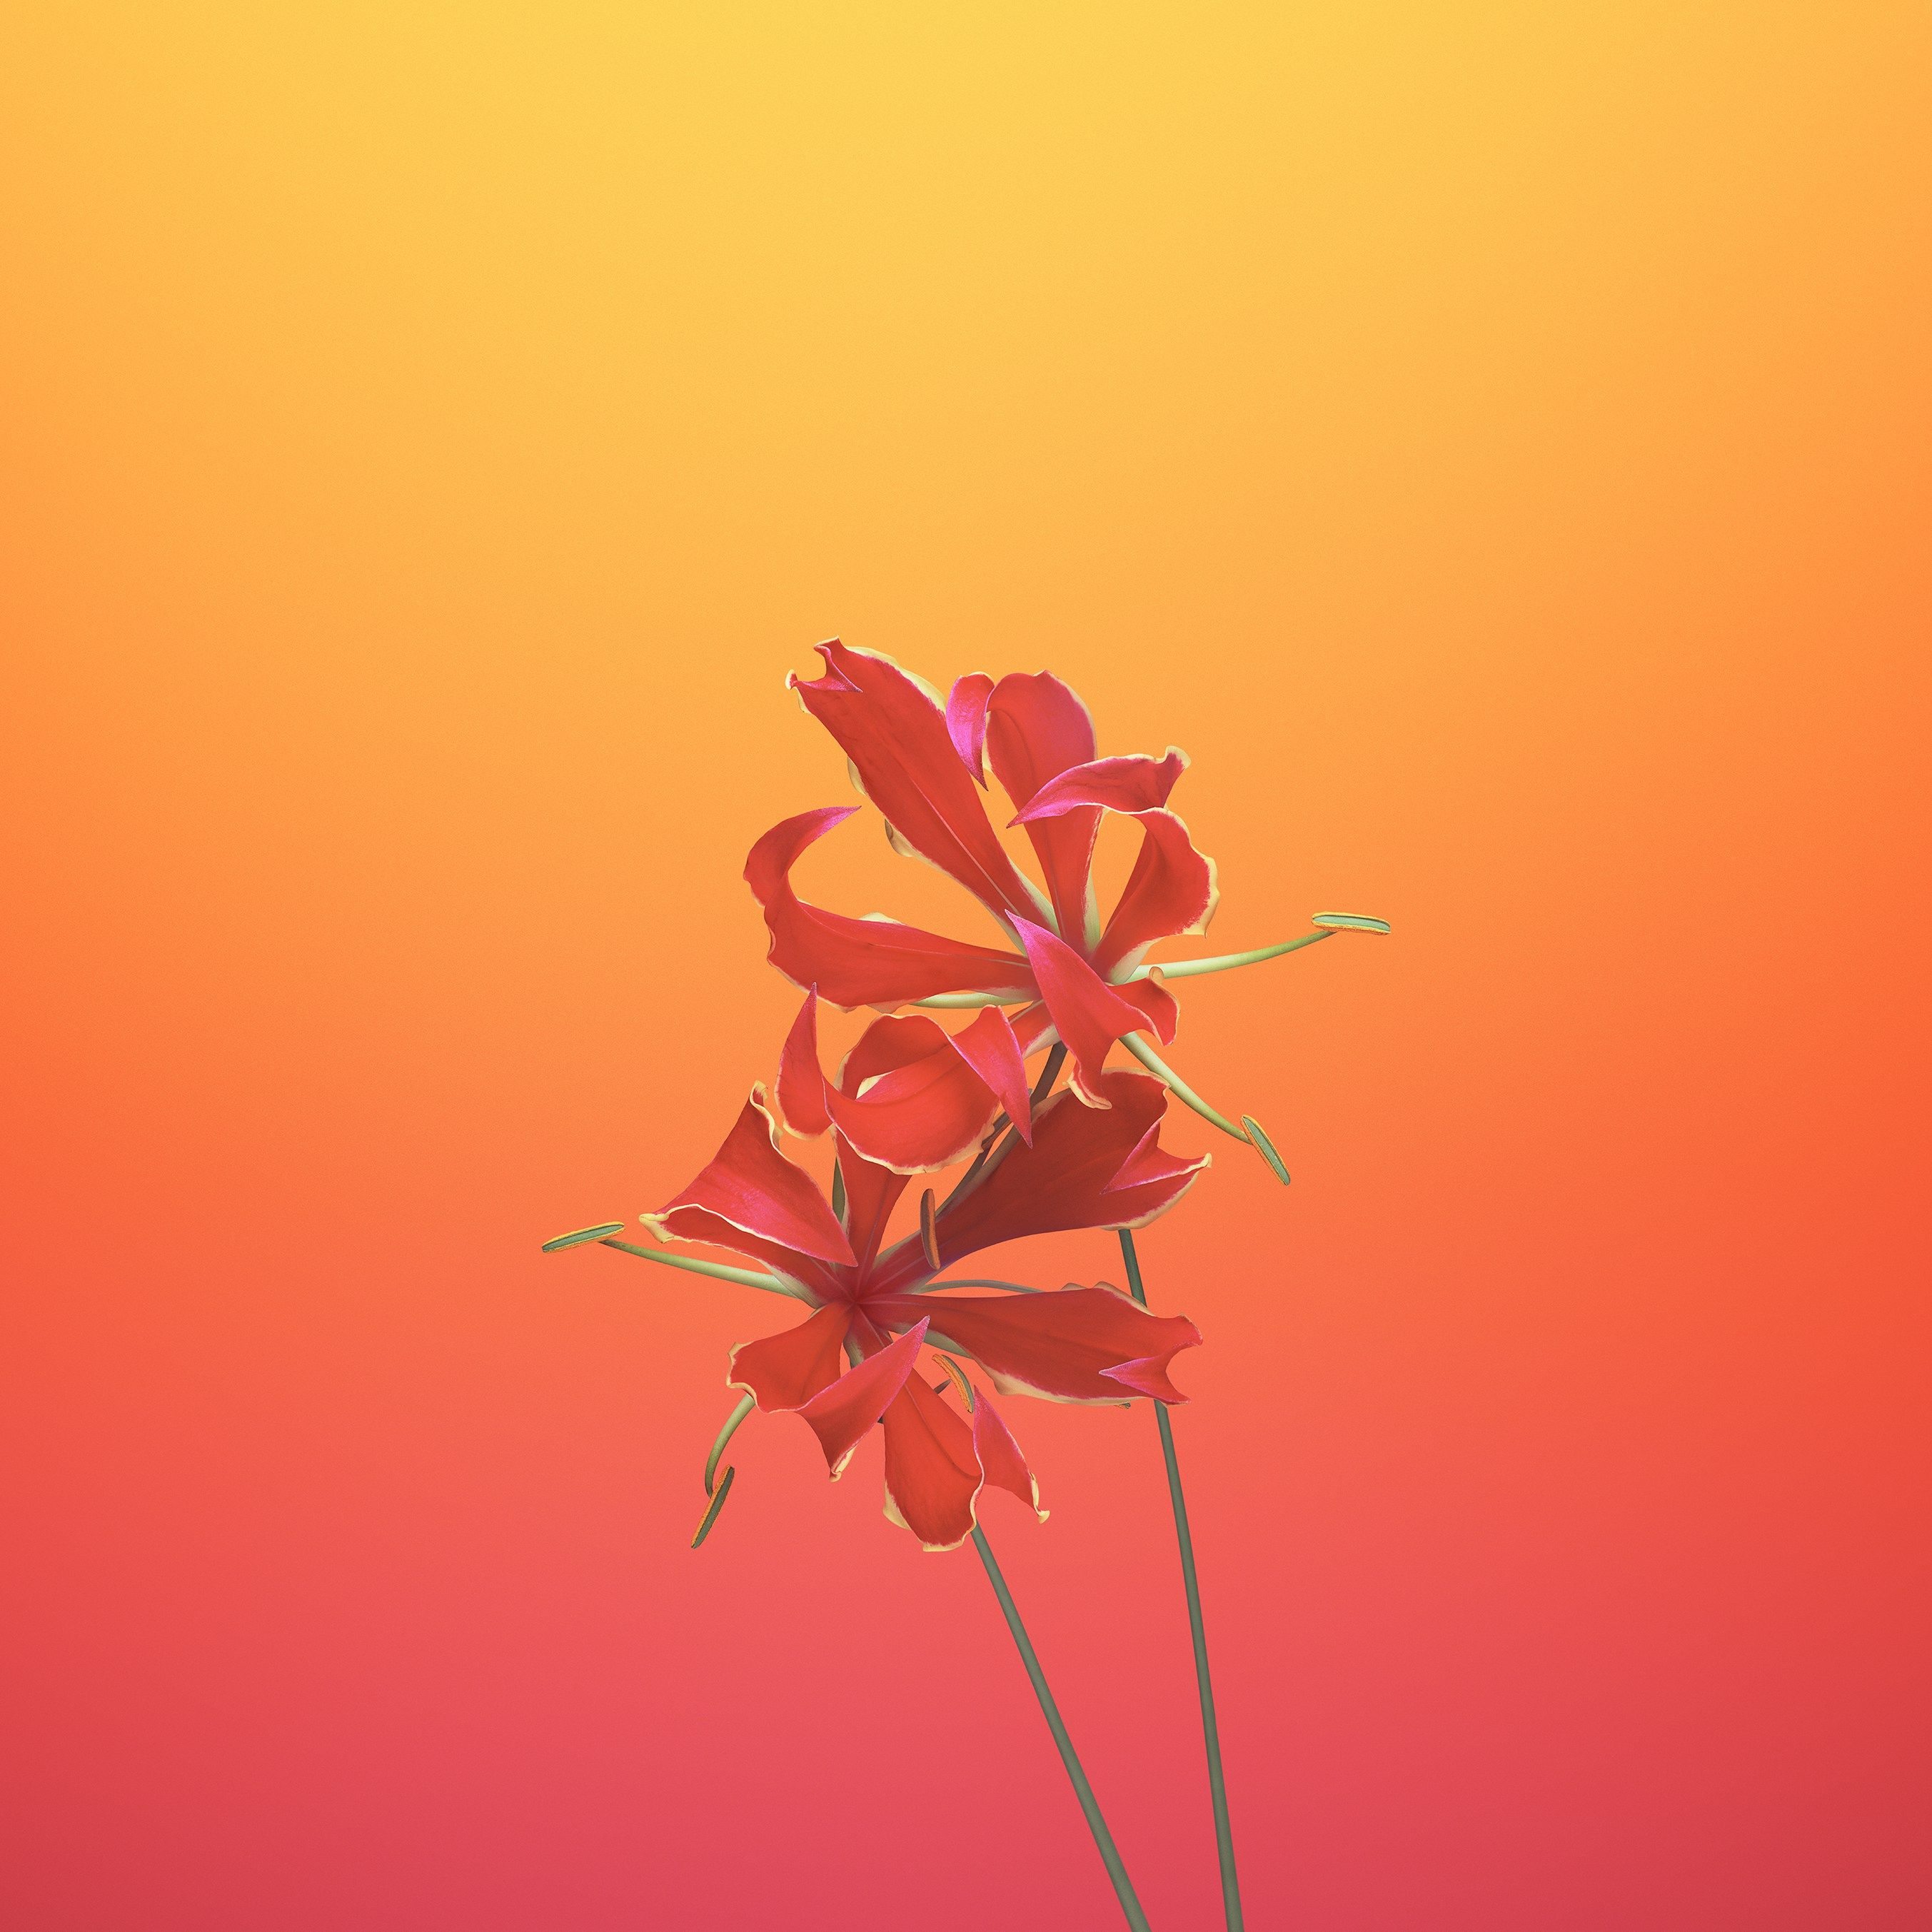 These 20 Gorgeous Ios 11 Wallpapers Will Pretty Up Your Phone Flower Iphone Wallpaper Ios 11 Wallpaper Apple Wallpaper